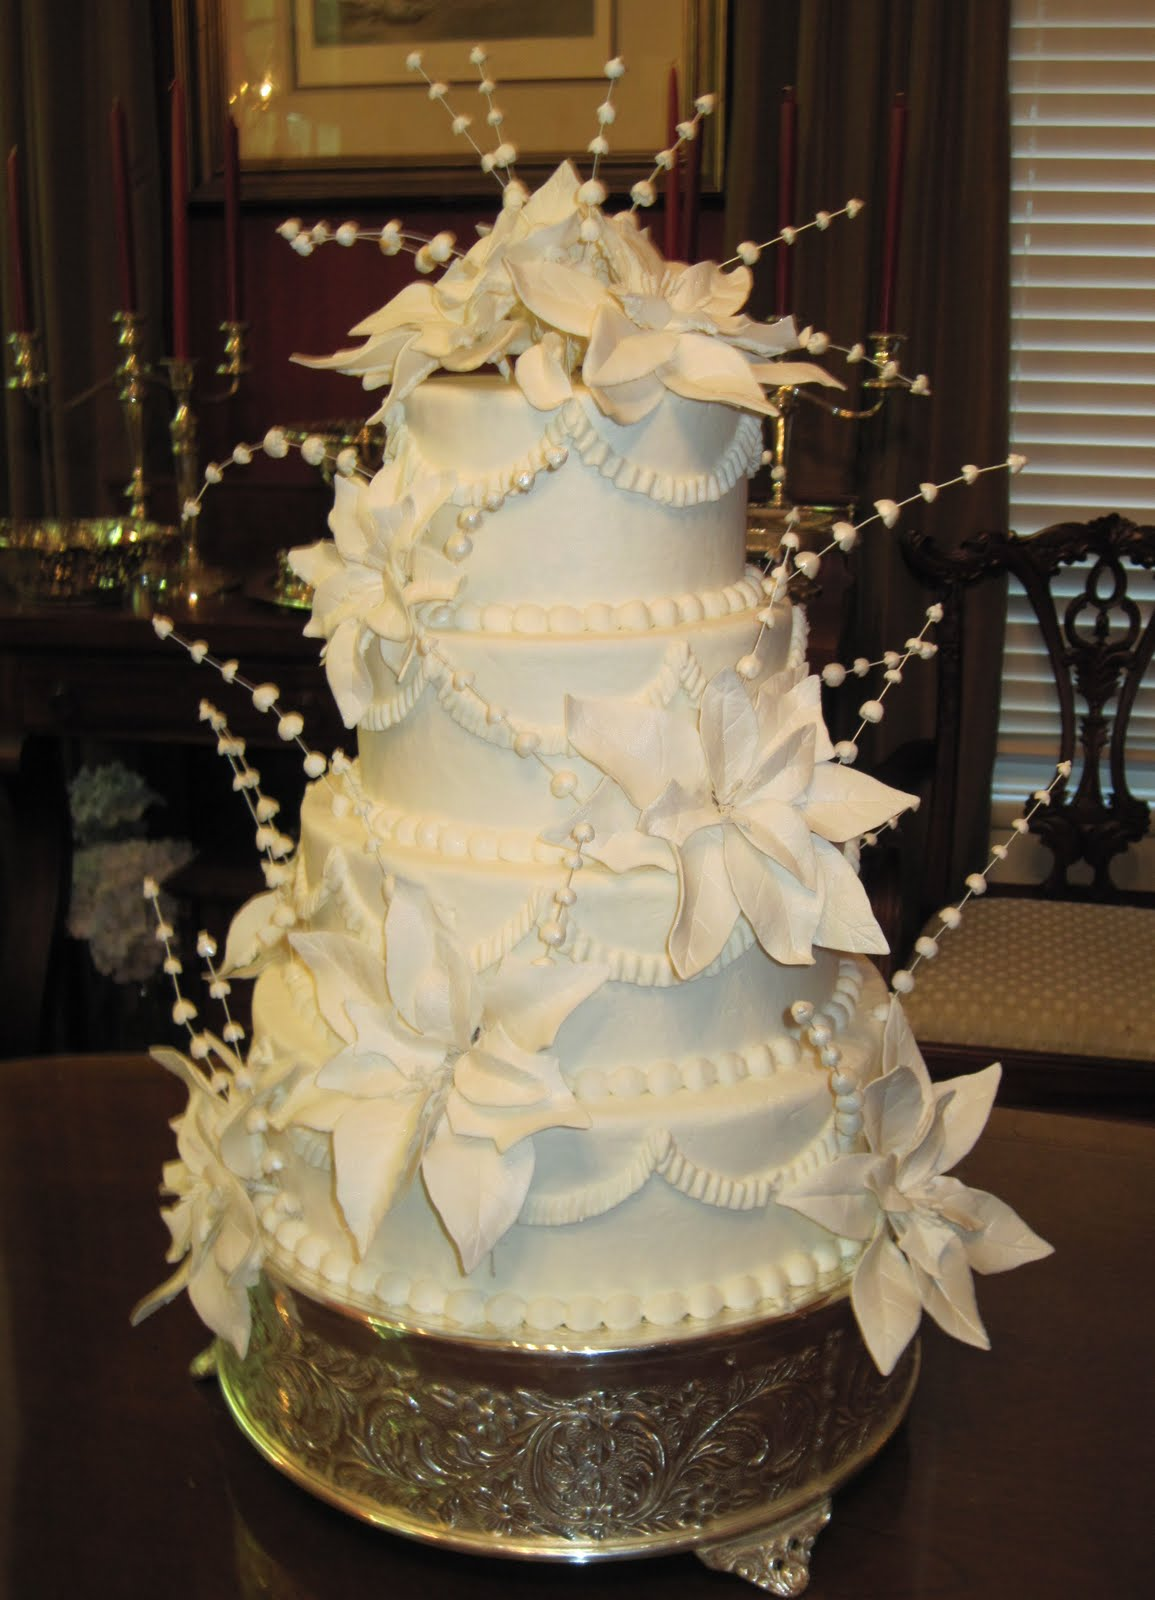 Heather s Cakes and Confections December 2011